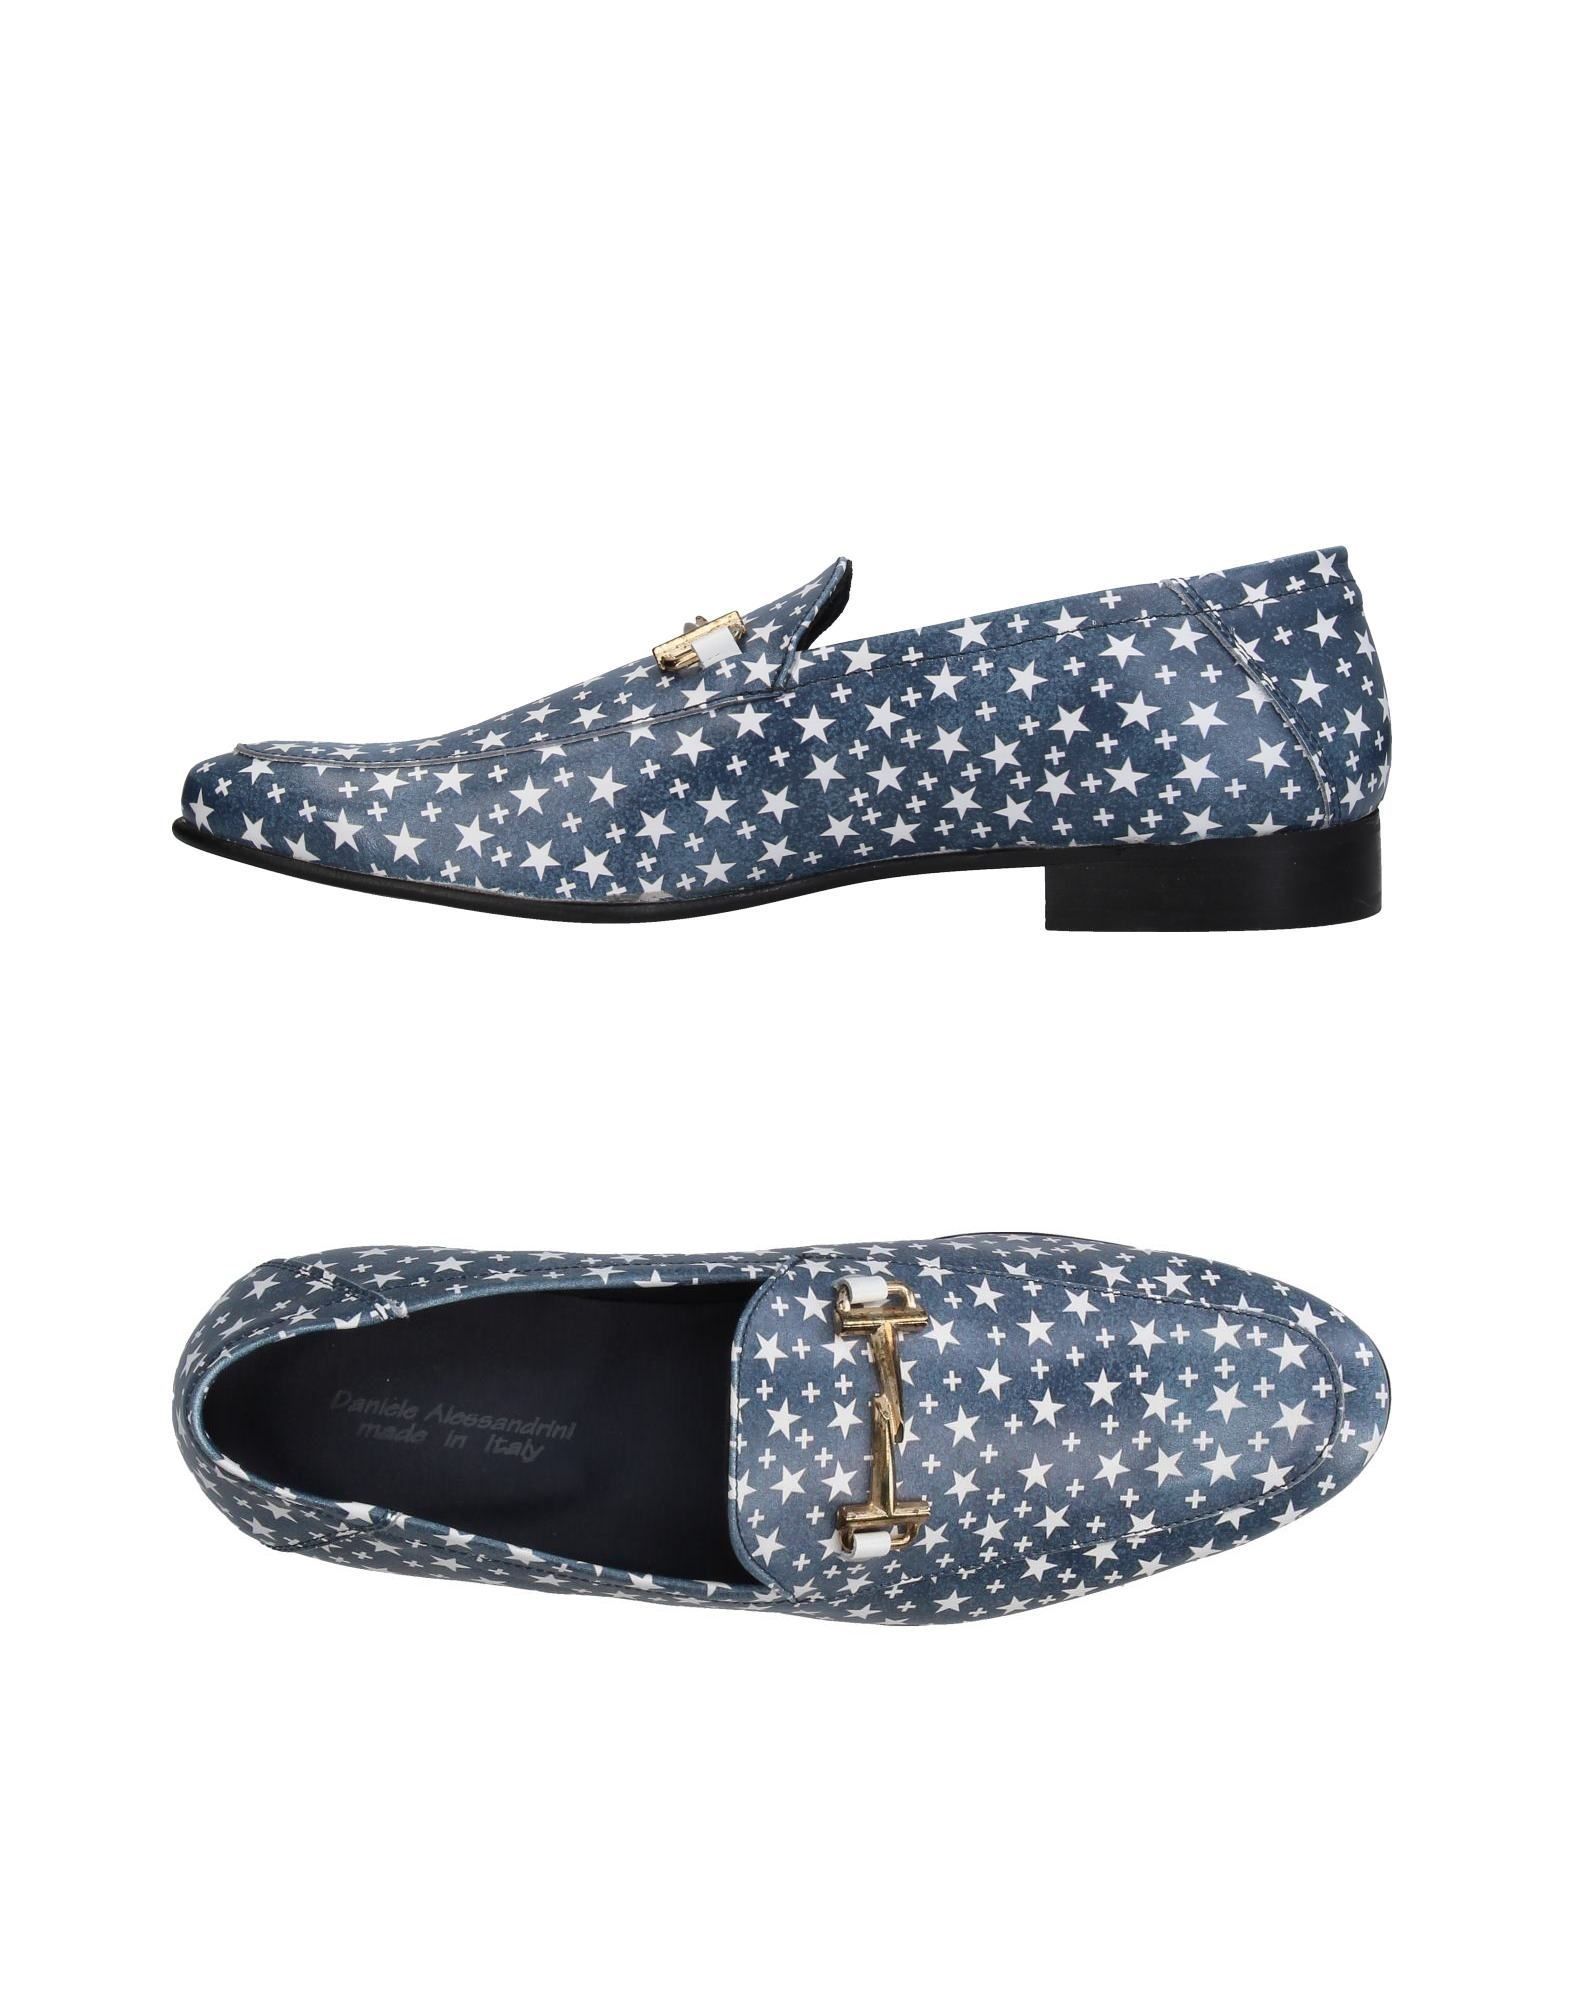 Daniele on Alessandrini Loafers - Men Daniele Alessandrini Loafers online on Daniele  Australia - 11393038CU 4c704f